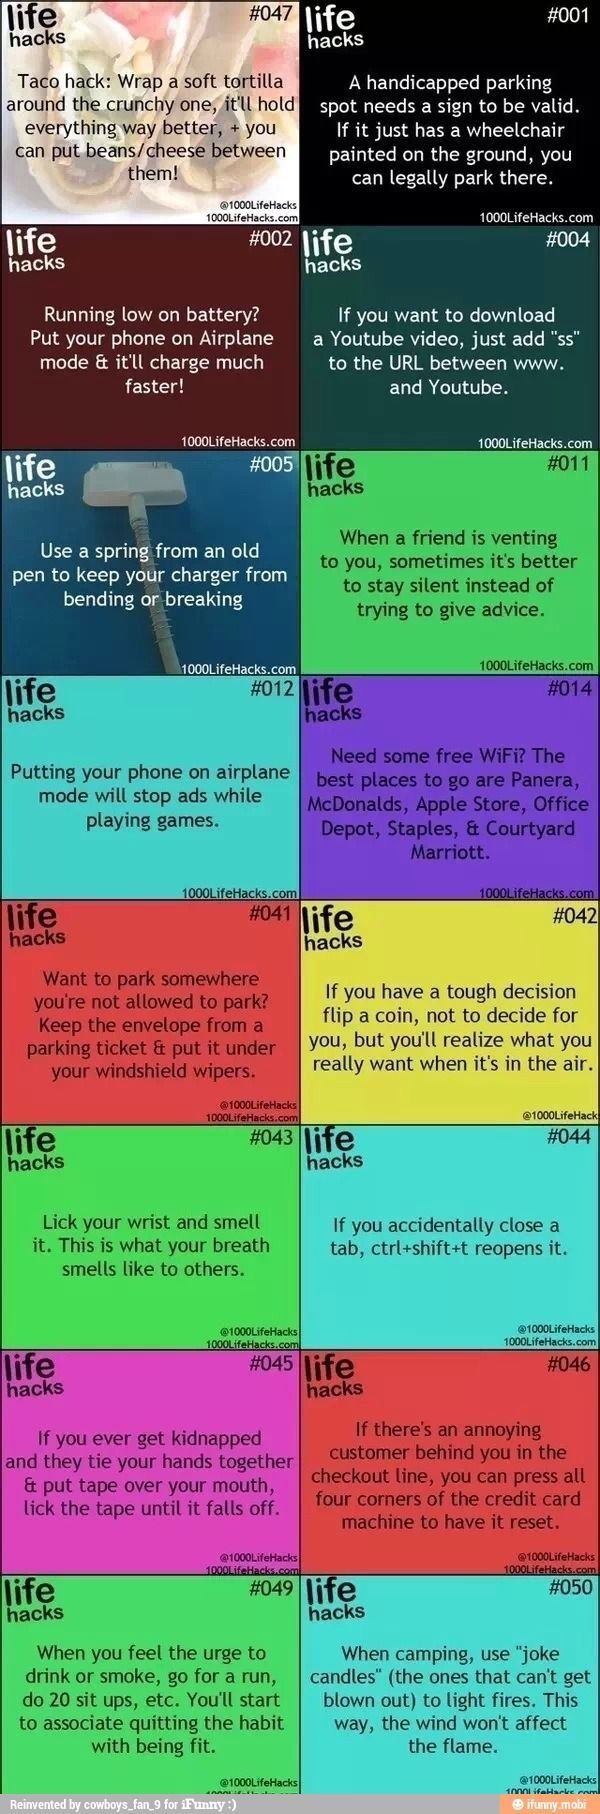 I will definitely use these! Especially the one where you lick your wrist to see what your breath smells like. Lol!! #LifeHack